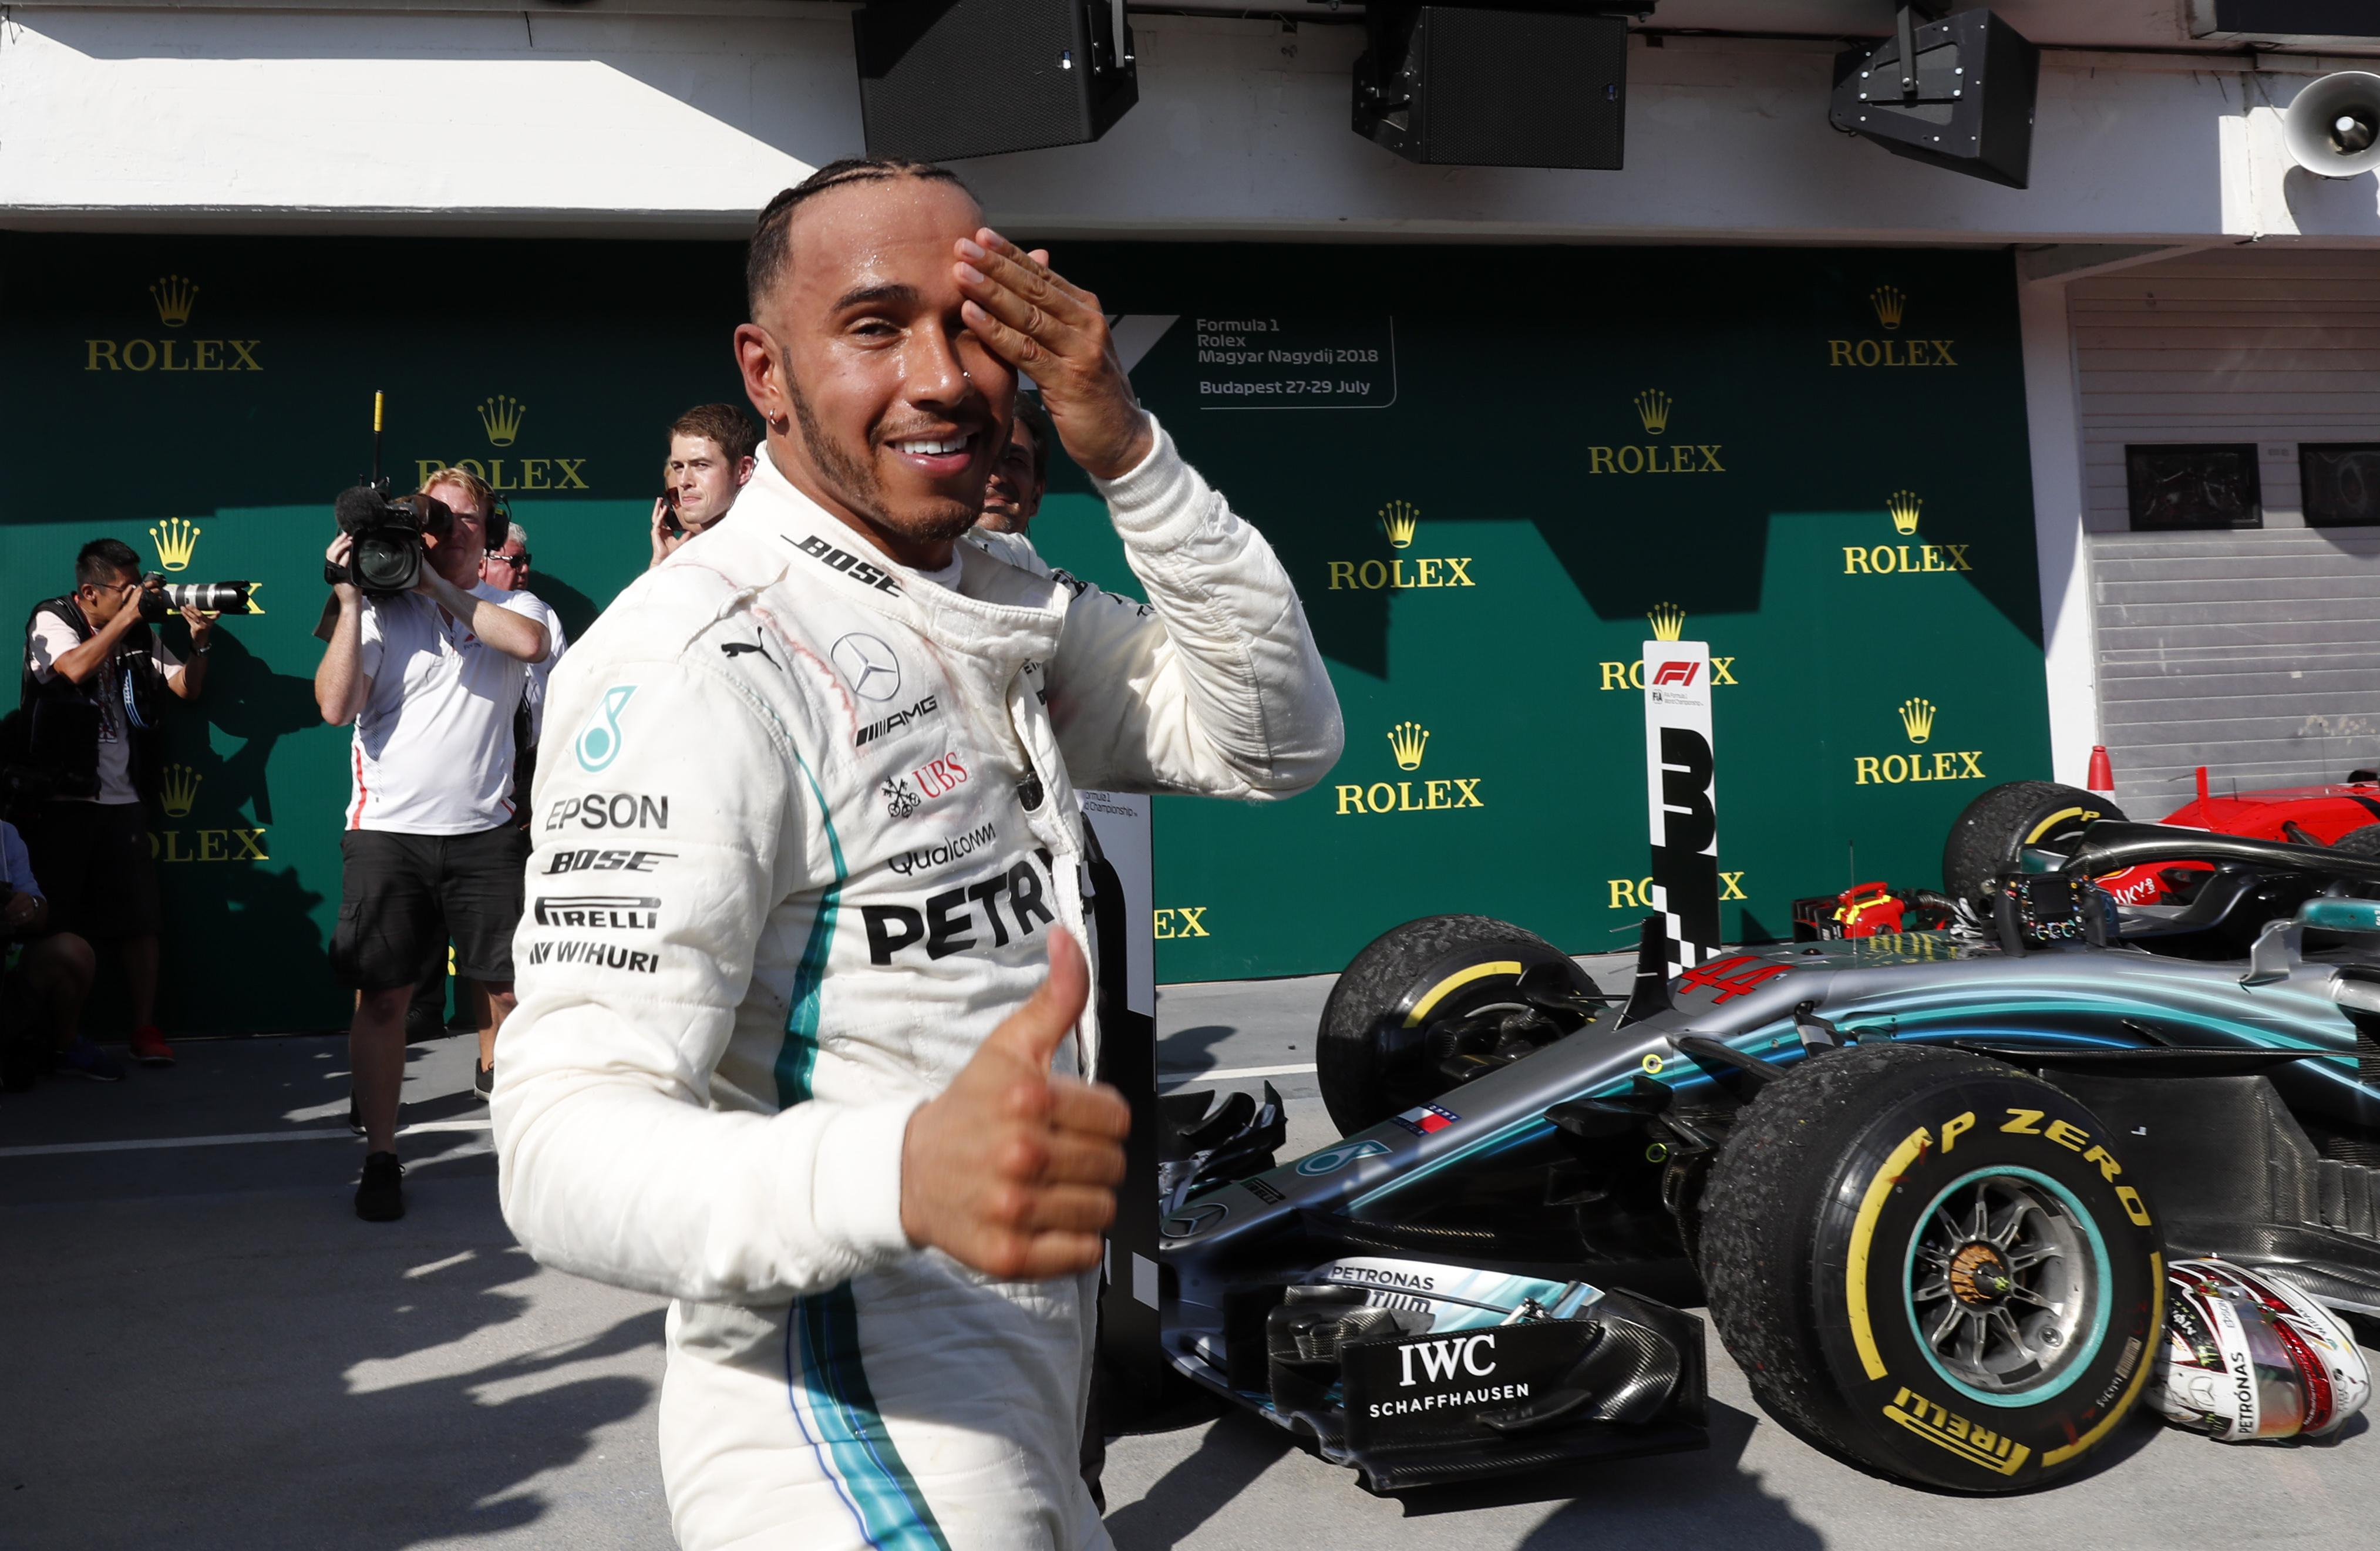 The Mercedes ace will be hoping to continue building his lead when he returns